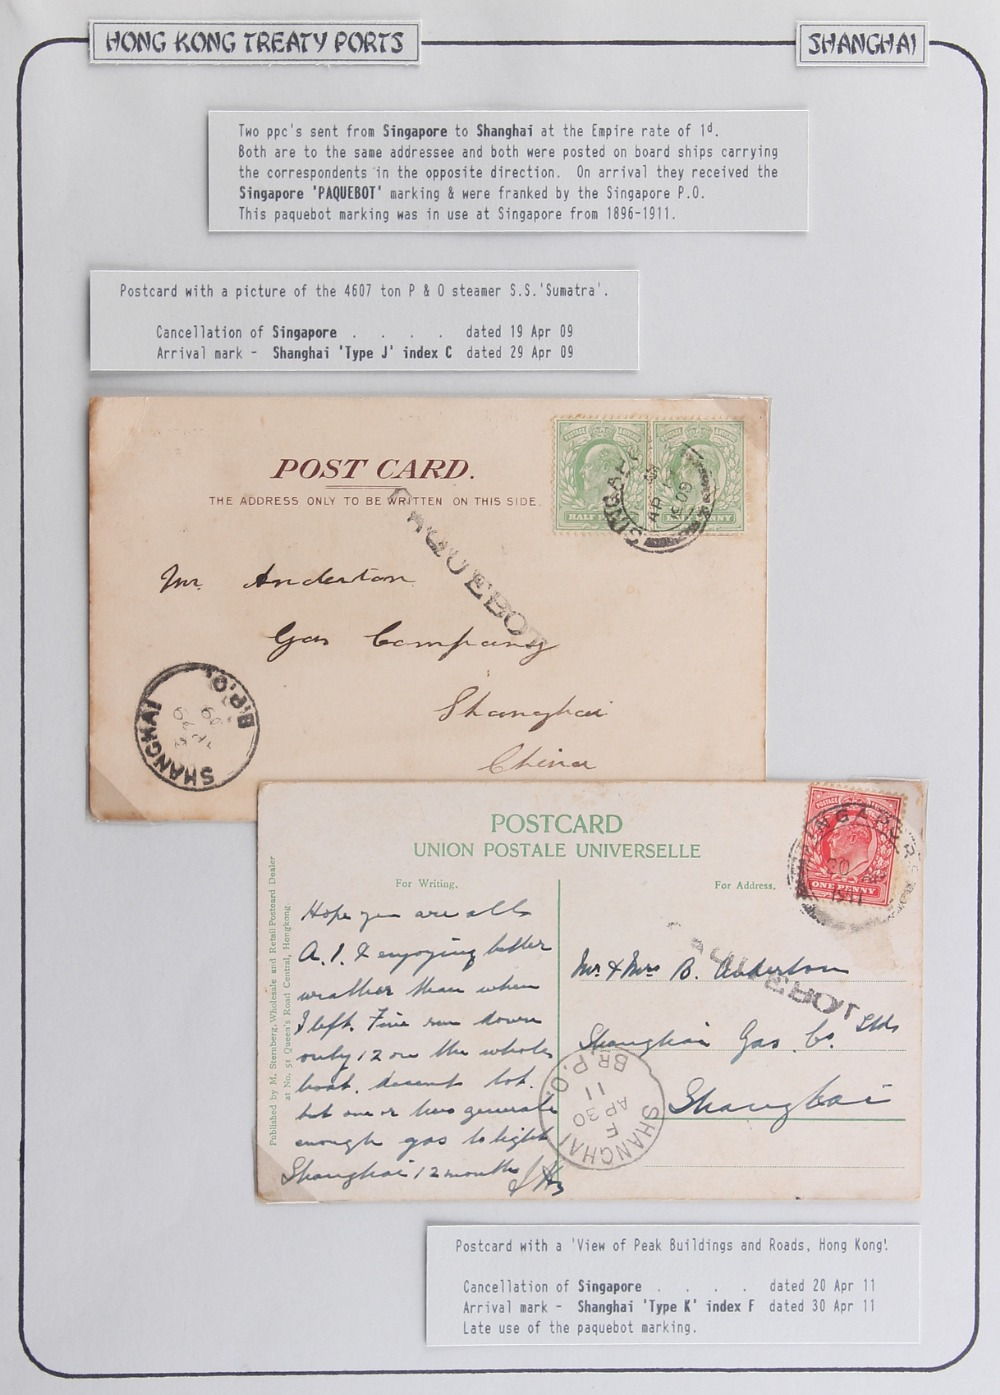 The Basil Lewis (1927-2019) collection of stamps - Hong Kong: Treaty Ports - Shanghai 1909 and